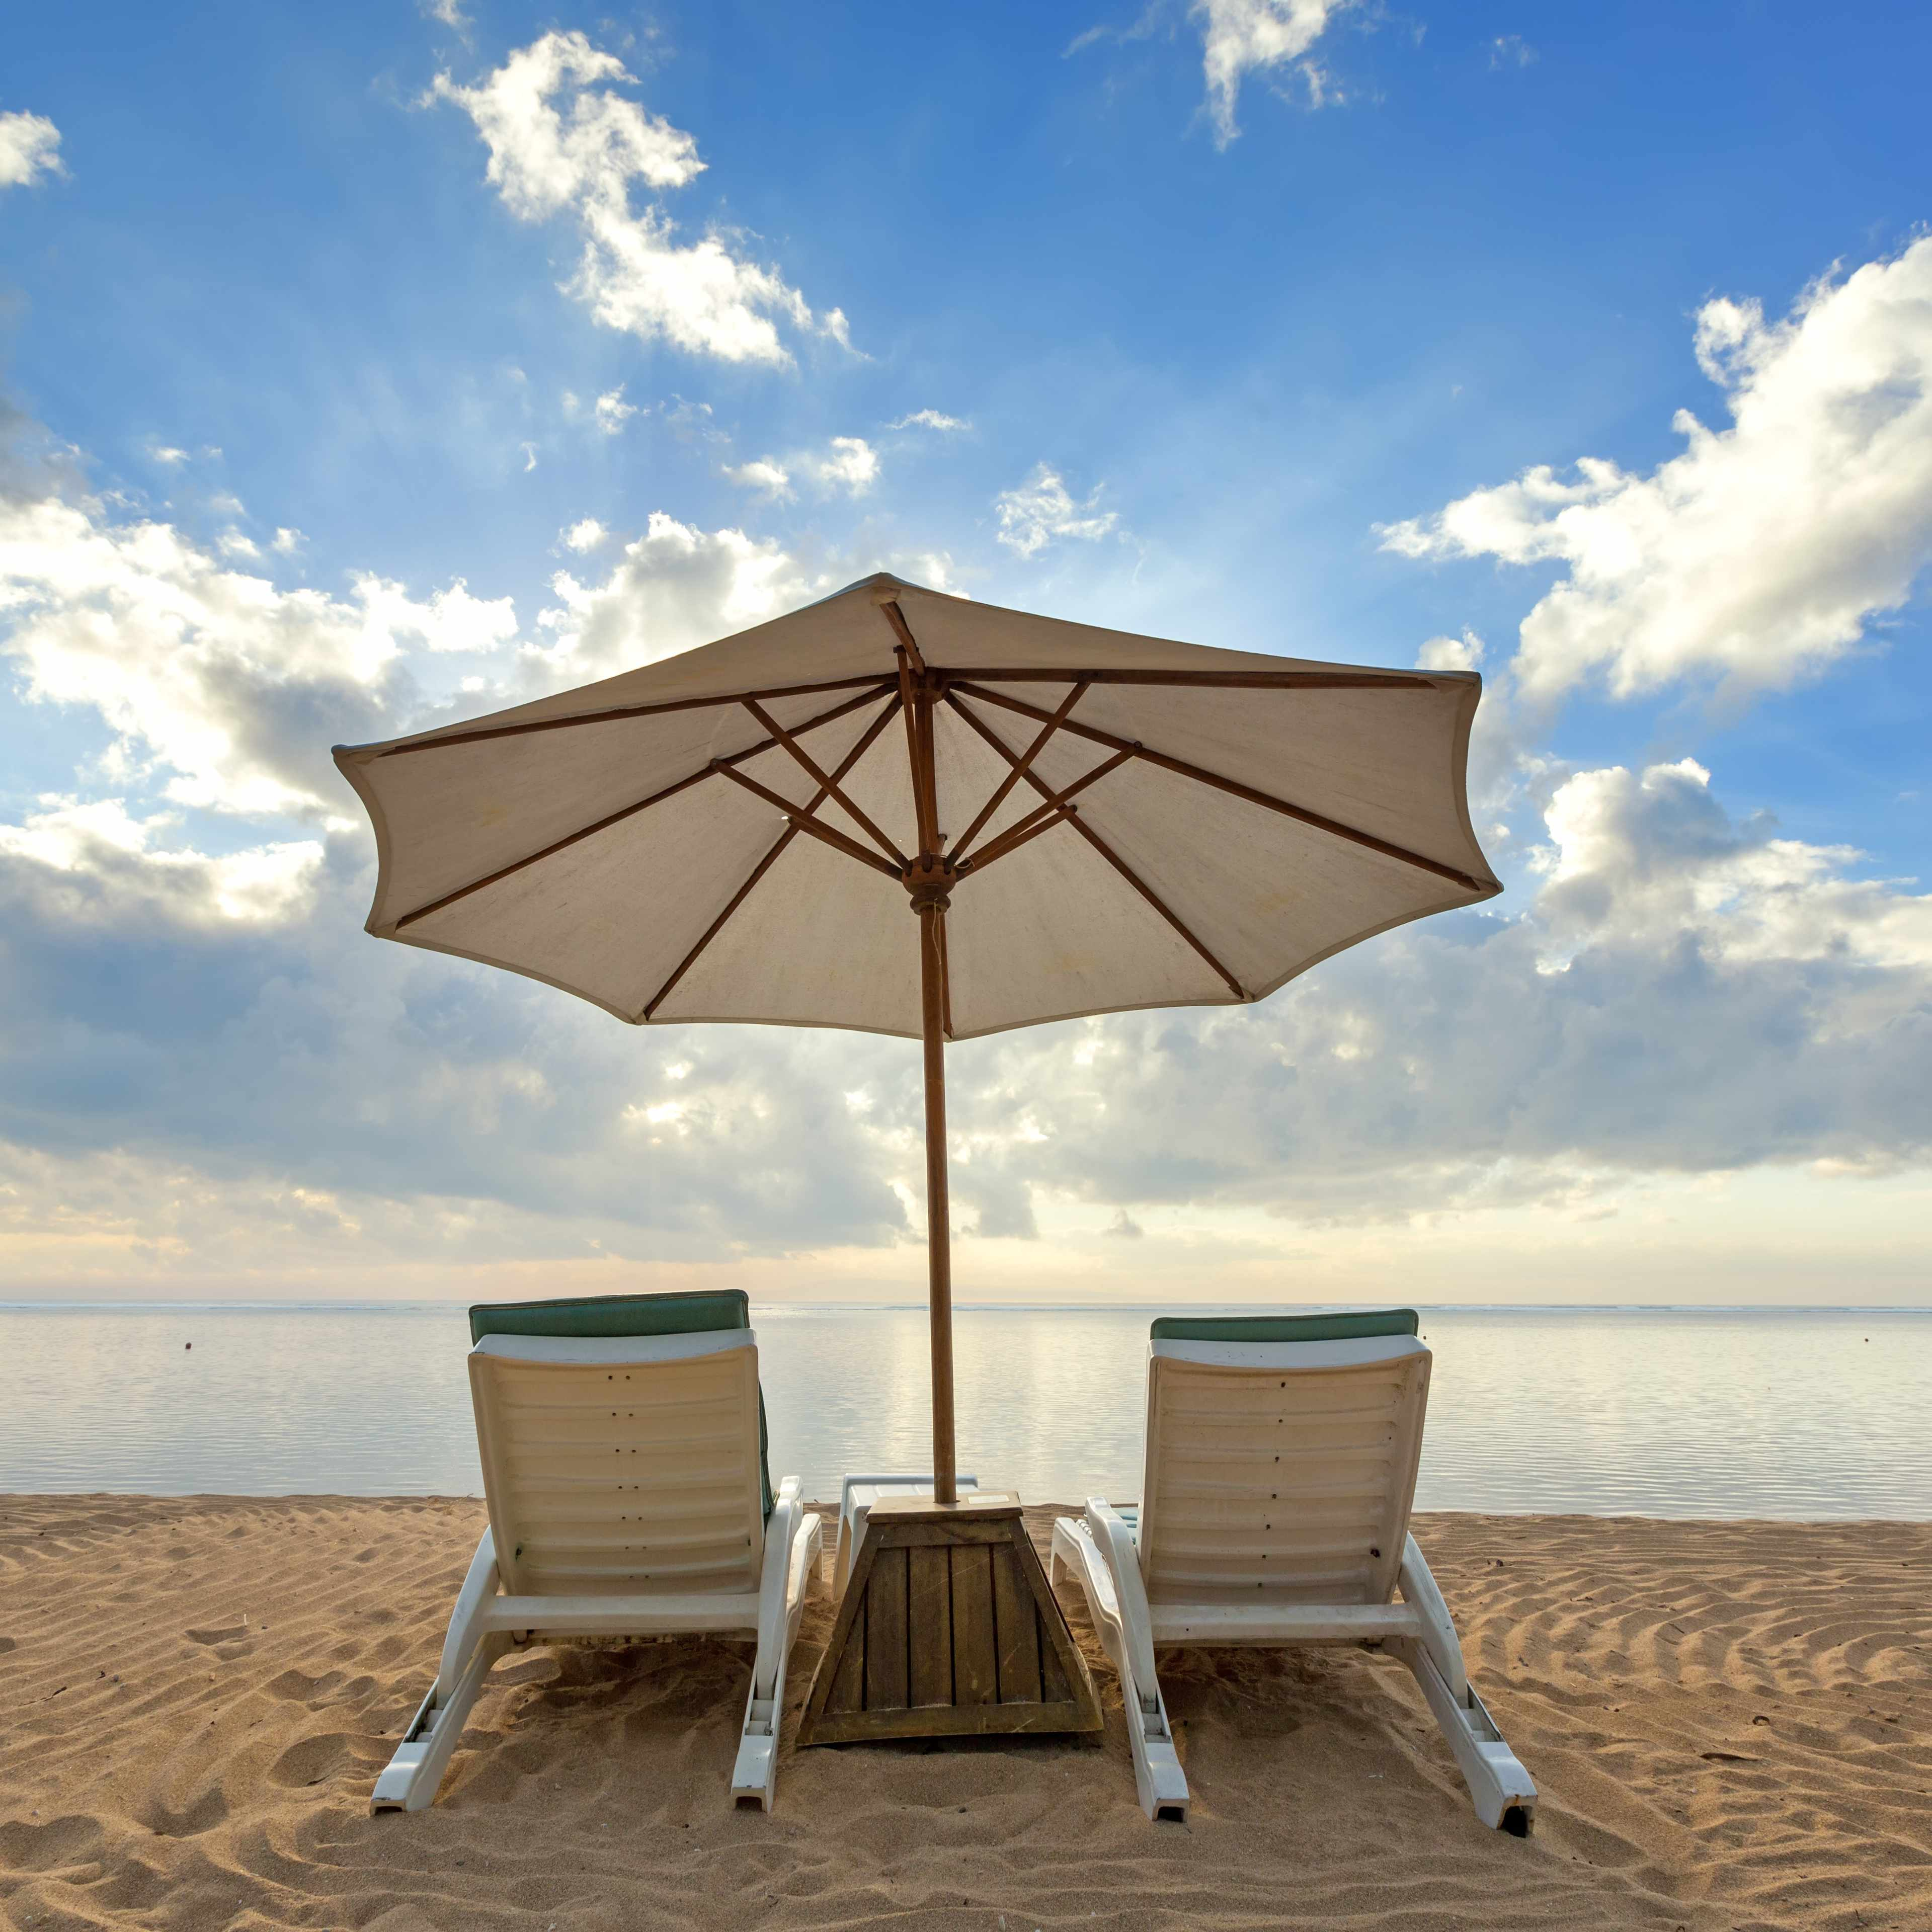 a sandy beach with two deck chairs and a large umbrella